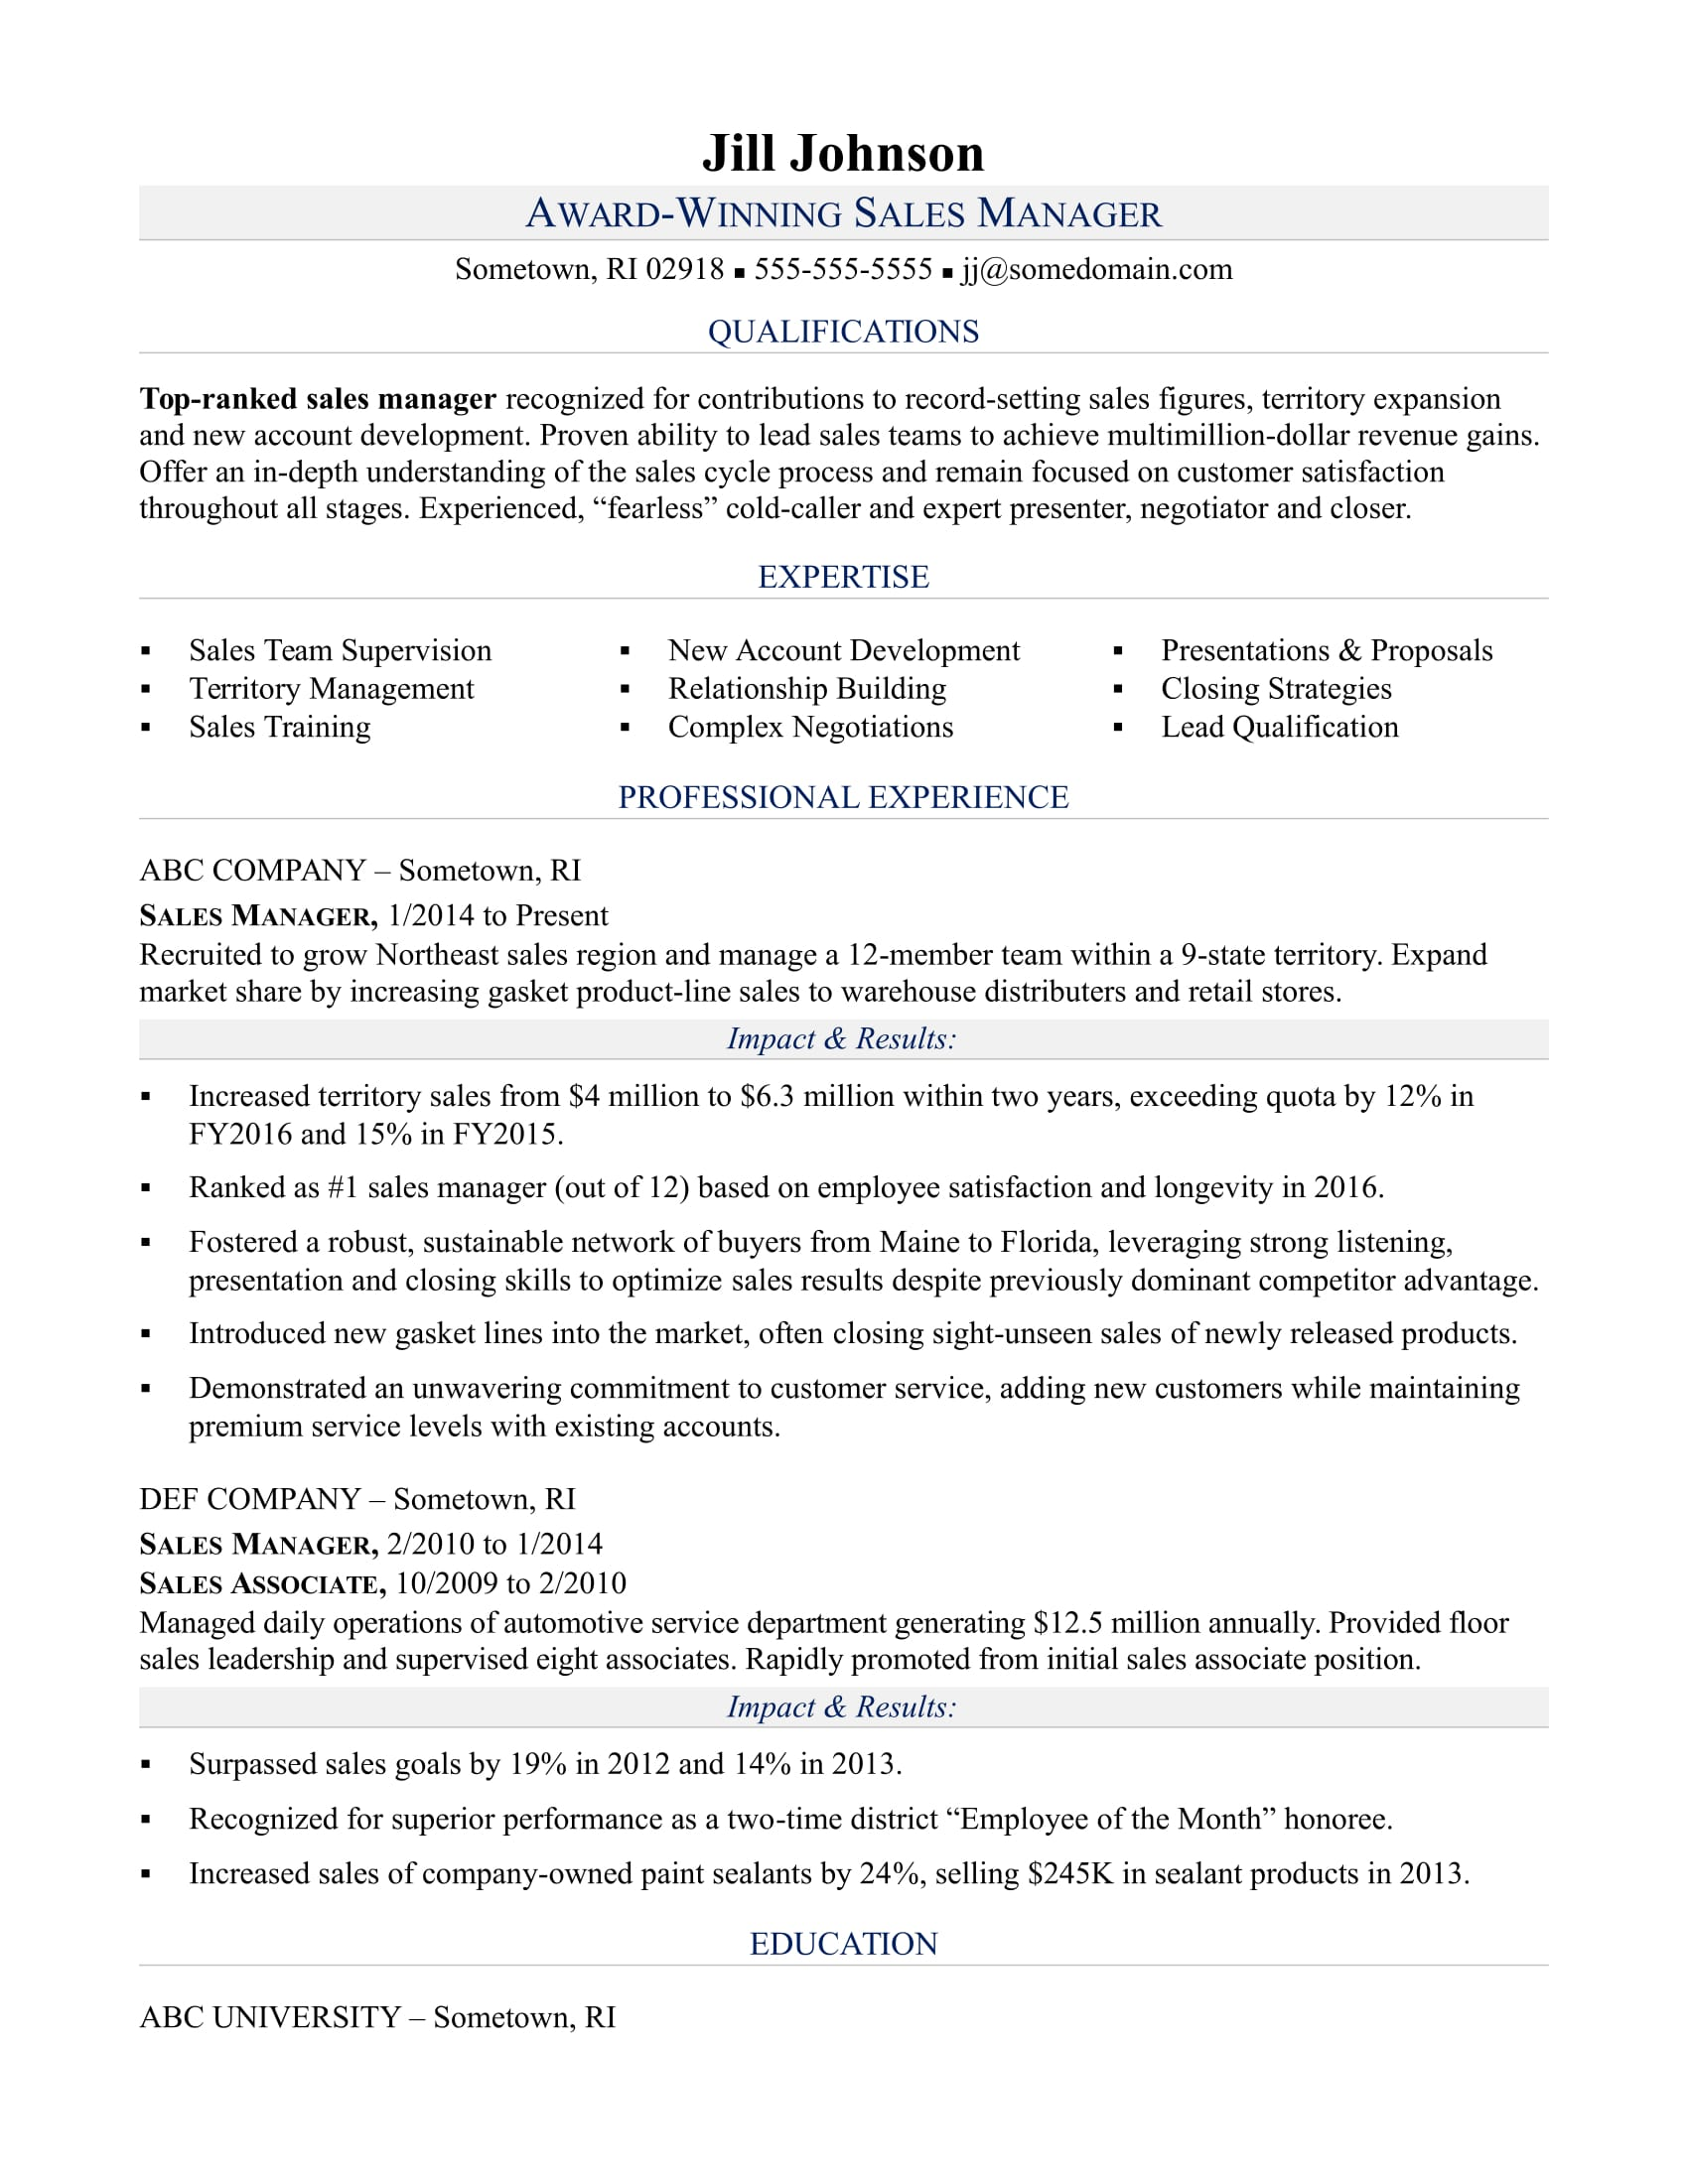 Management Skills For A Resume Sales Manager Resume Sample Monster